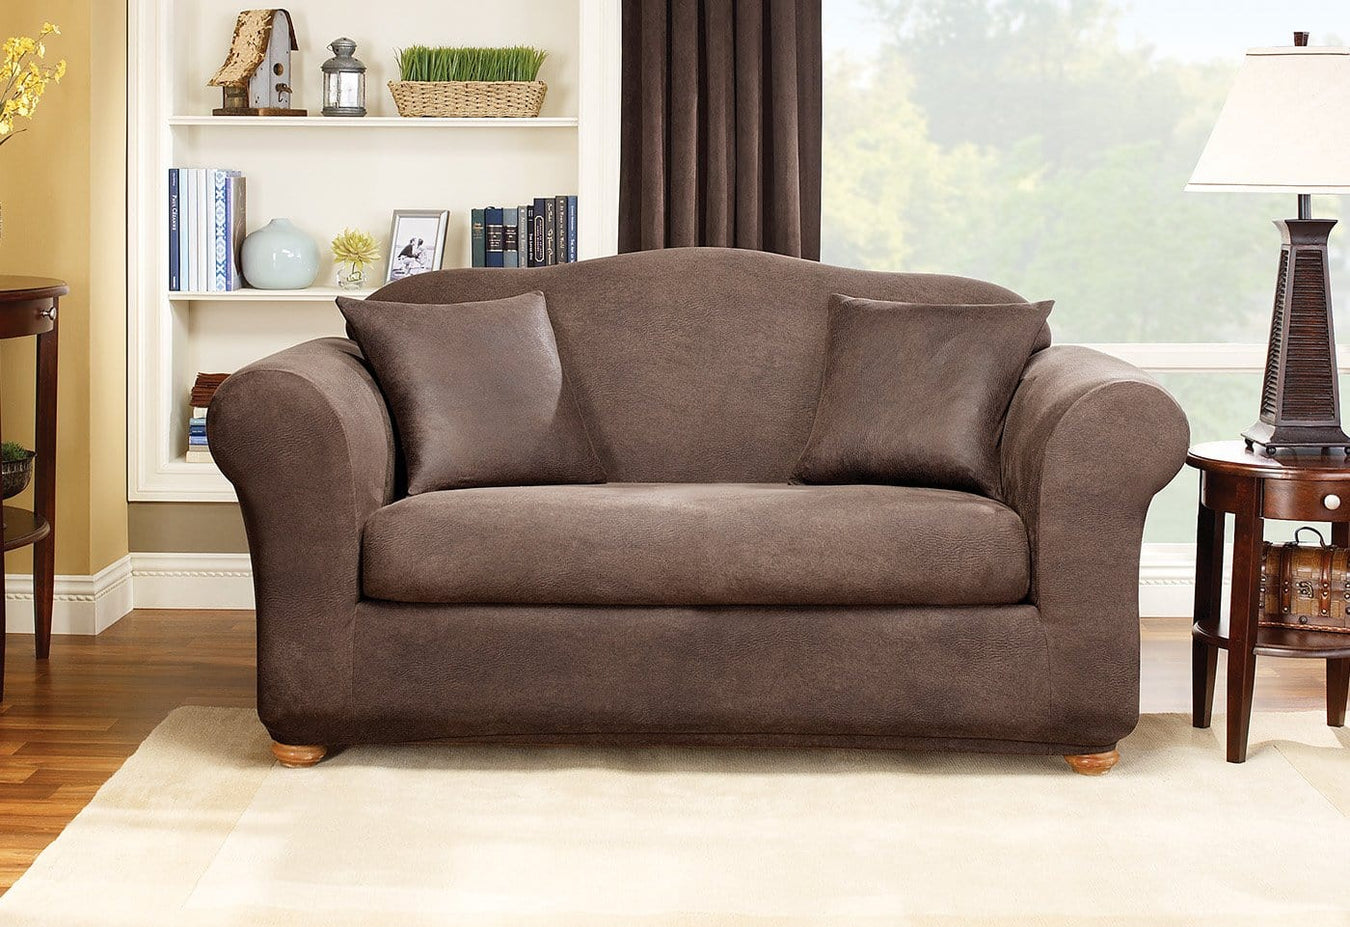 Stretch Leather Two Piece Sofa Slipcover Slipcovers For